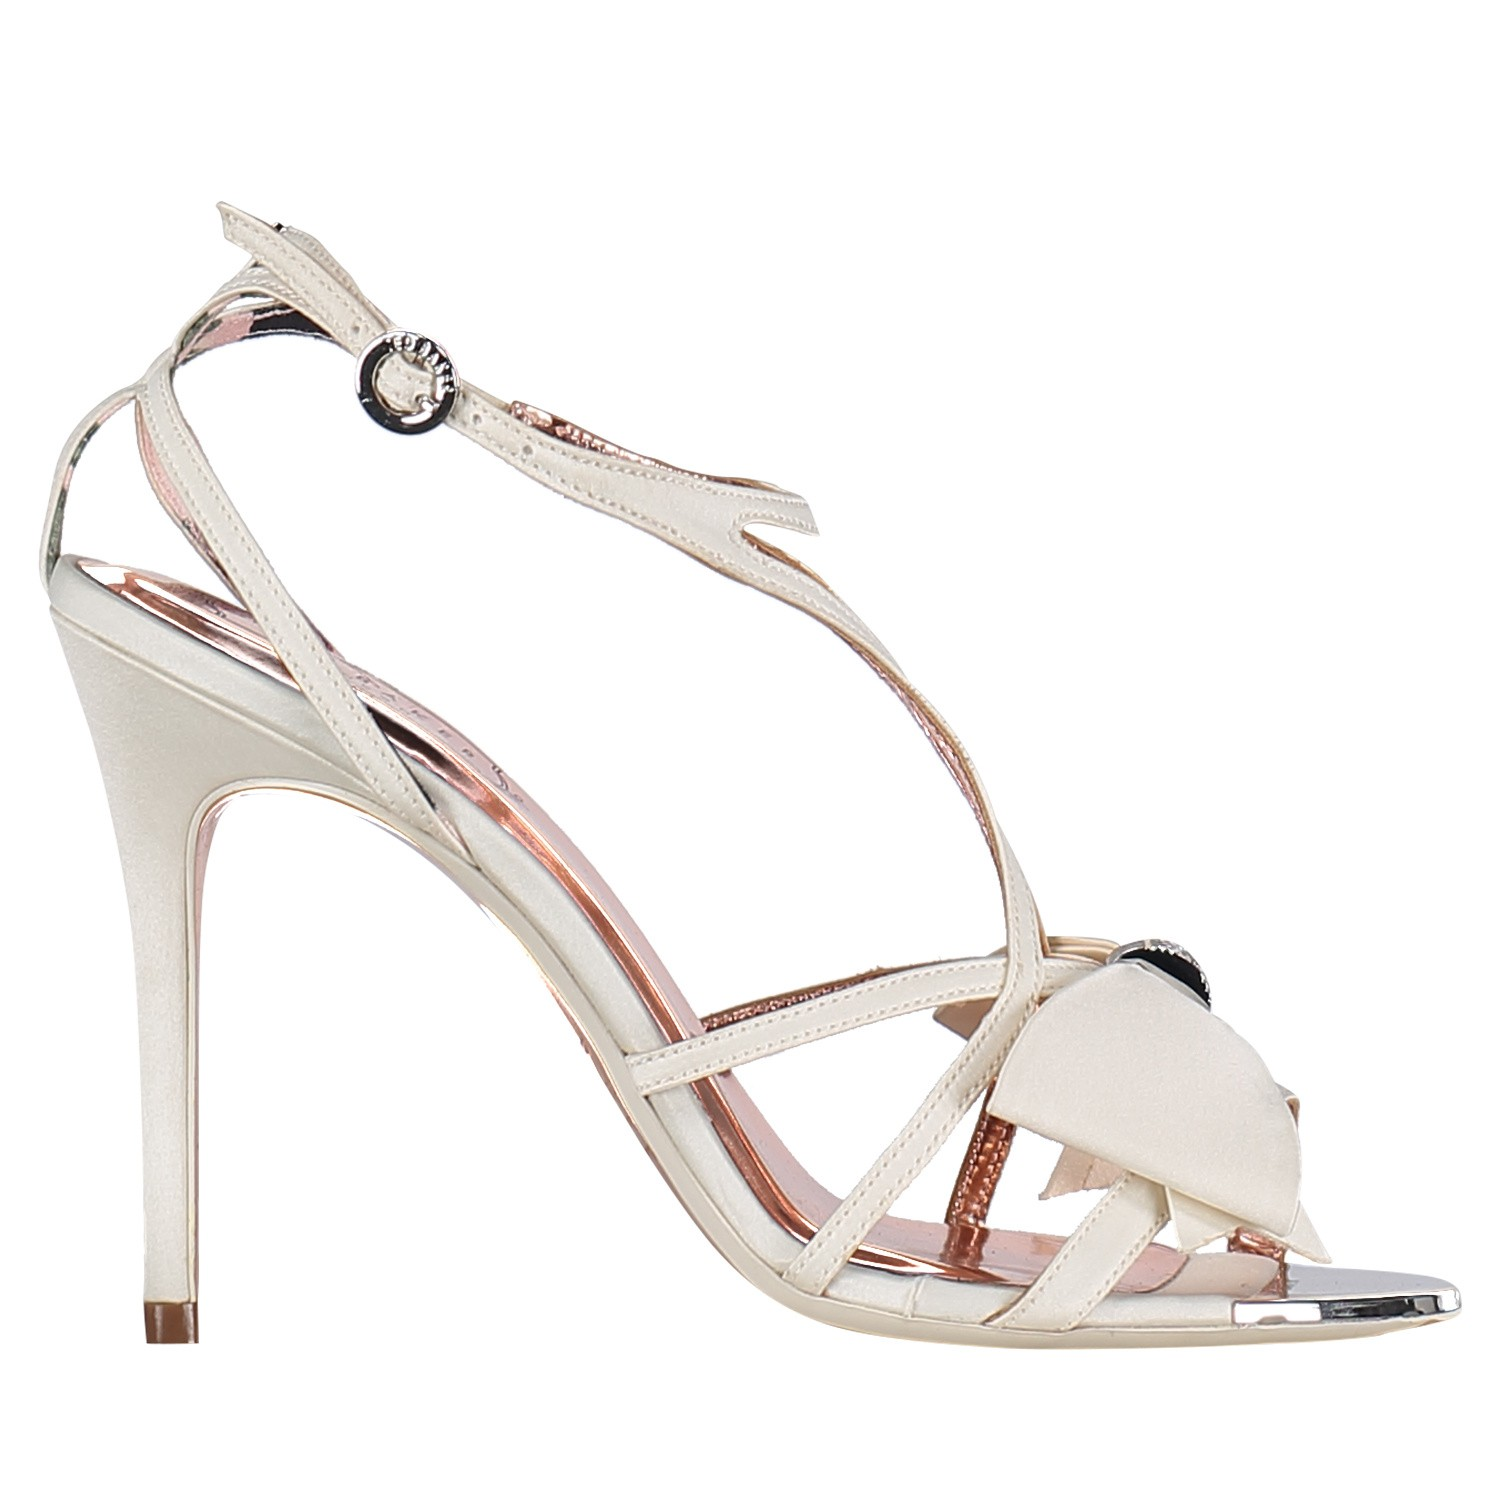 Picture of Ted Baker 918516 womens sandals off white